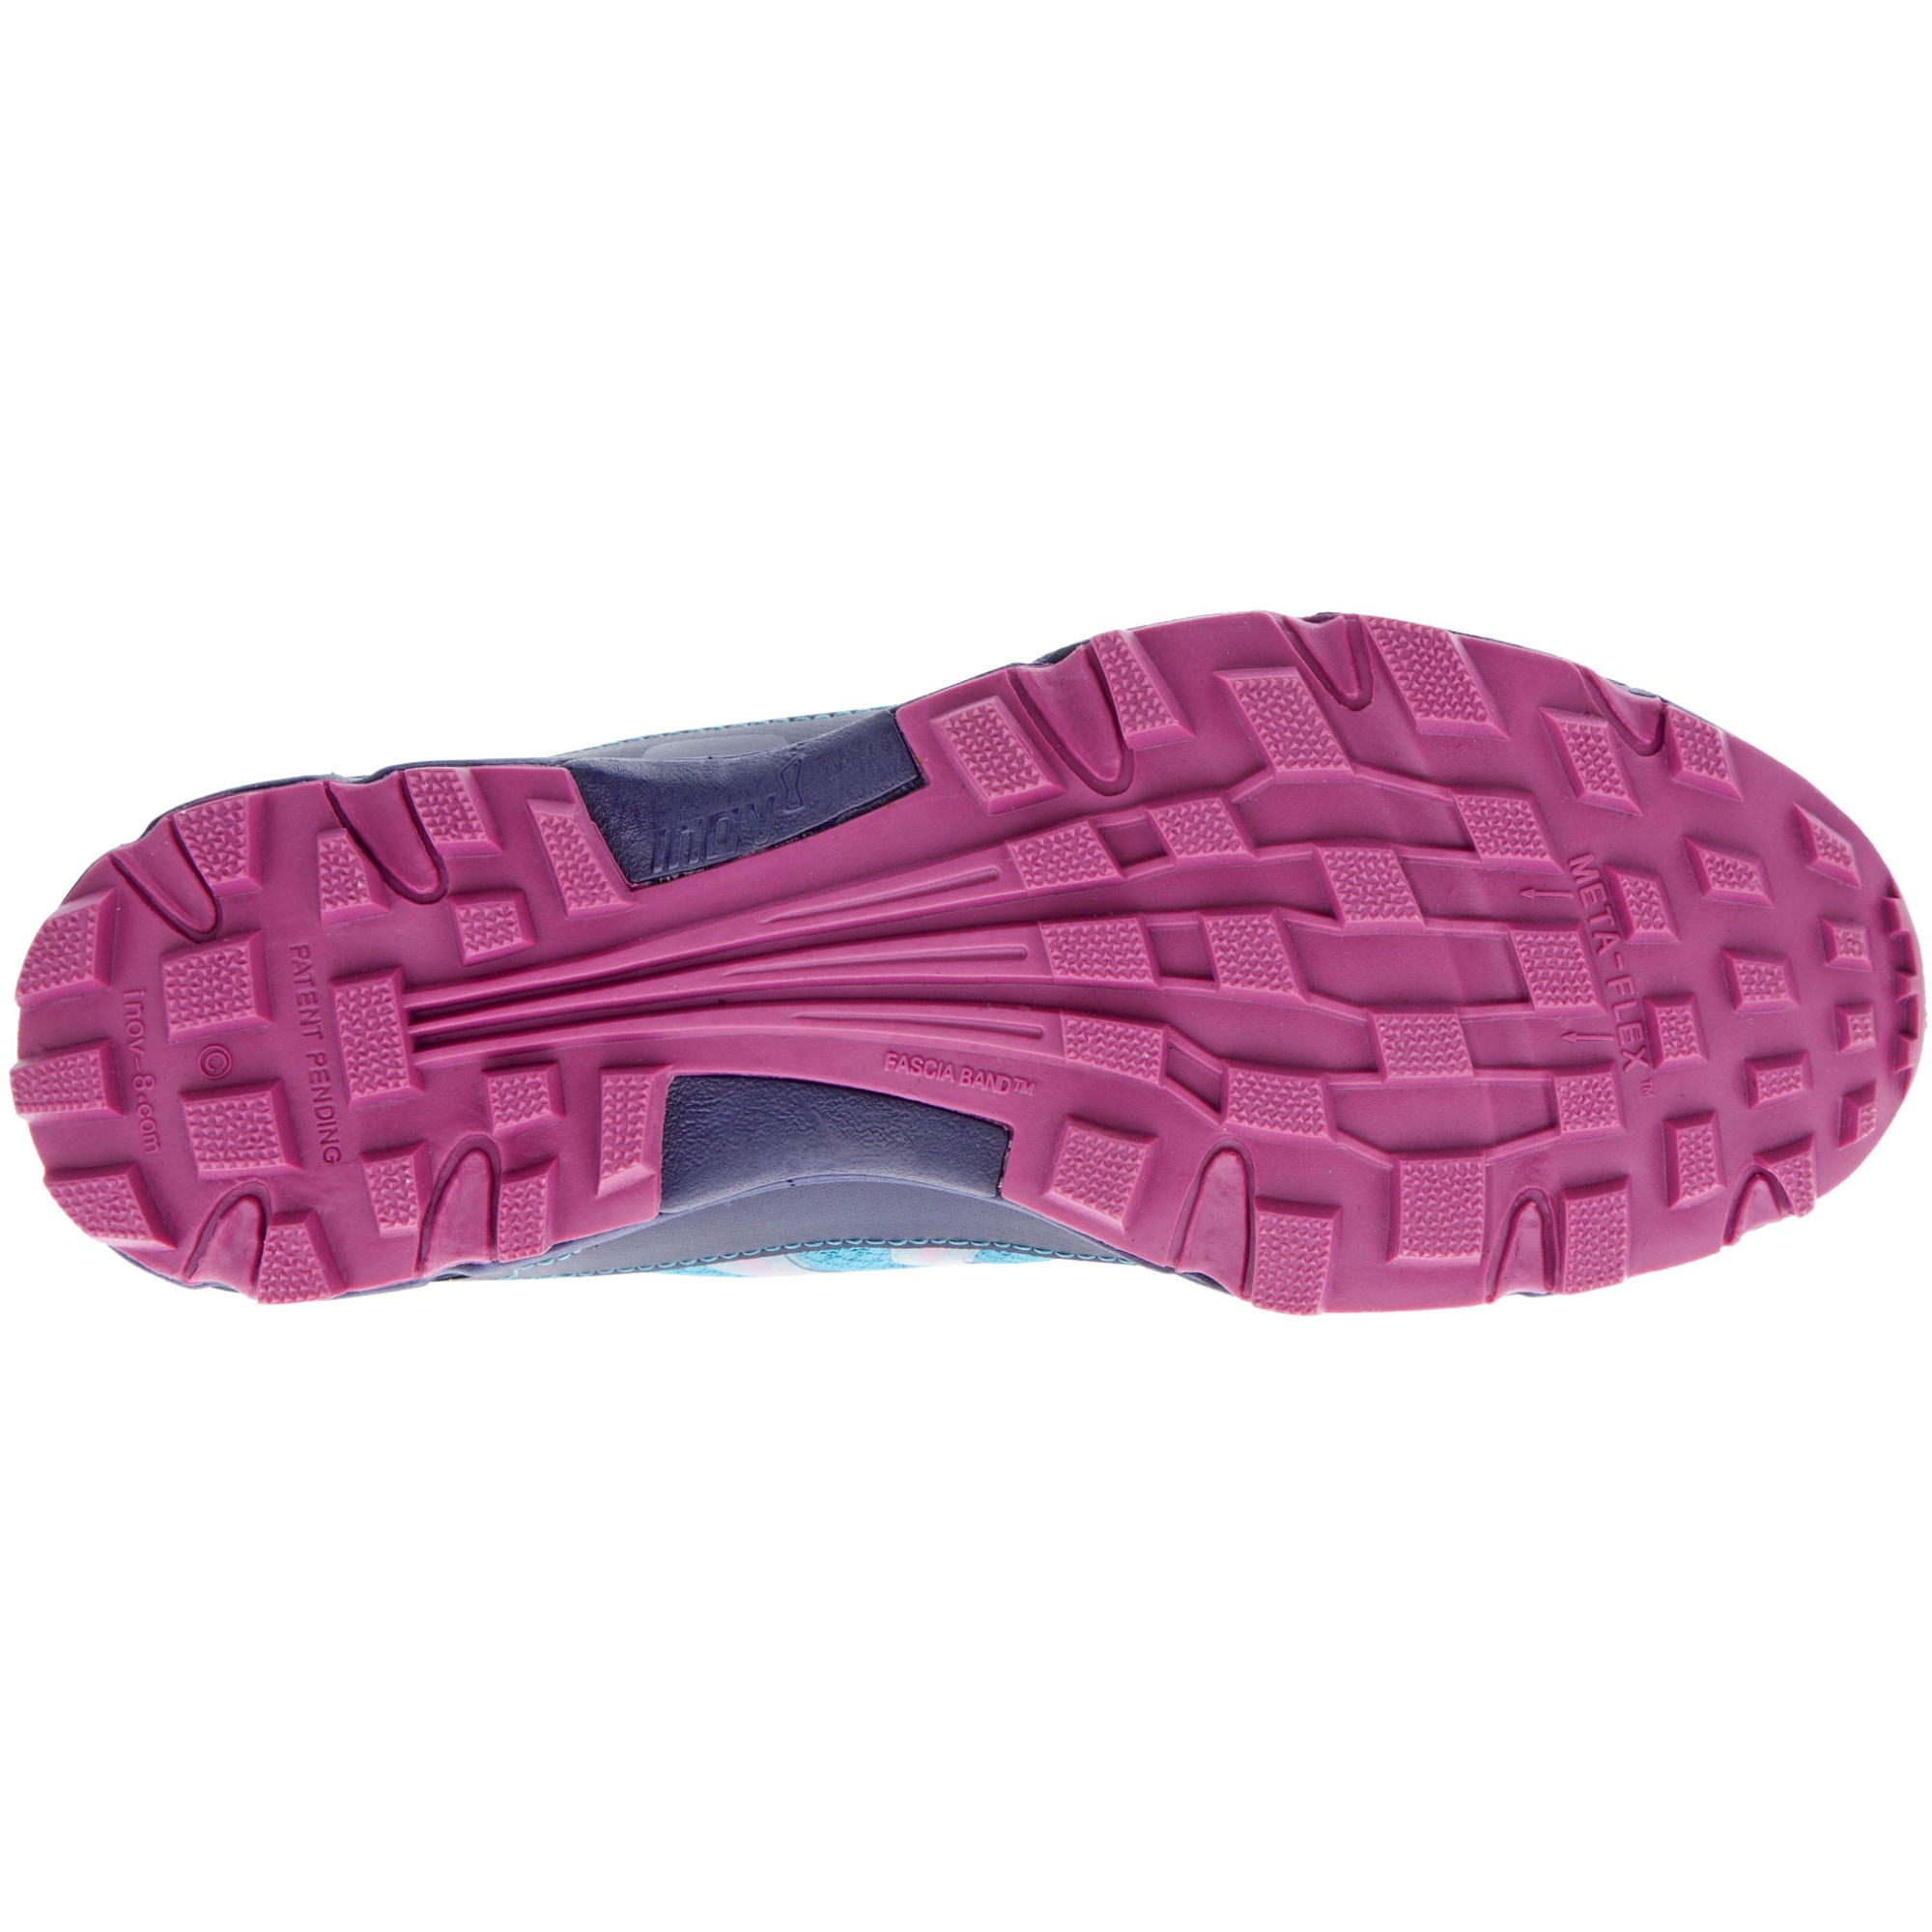 Inov8 Womens Roclite 280 Teal and Navy and Purple